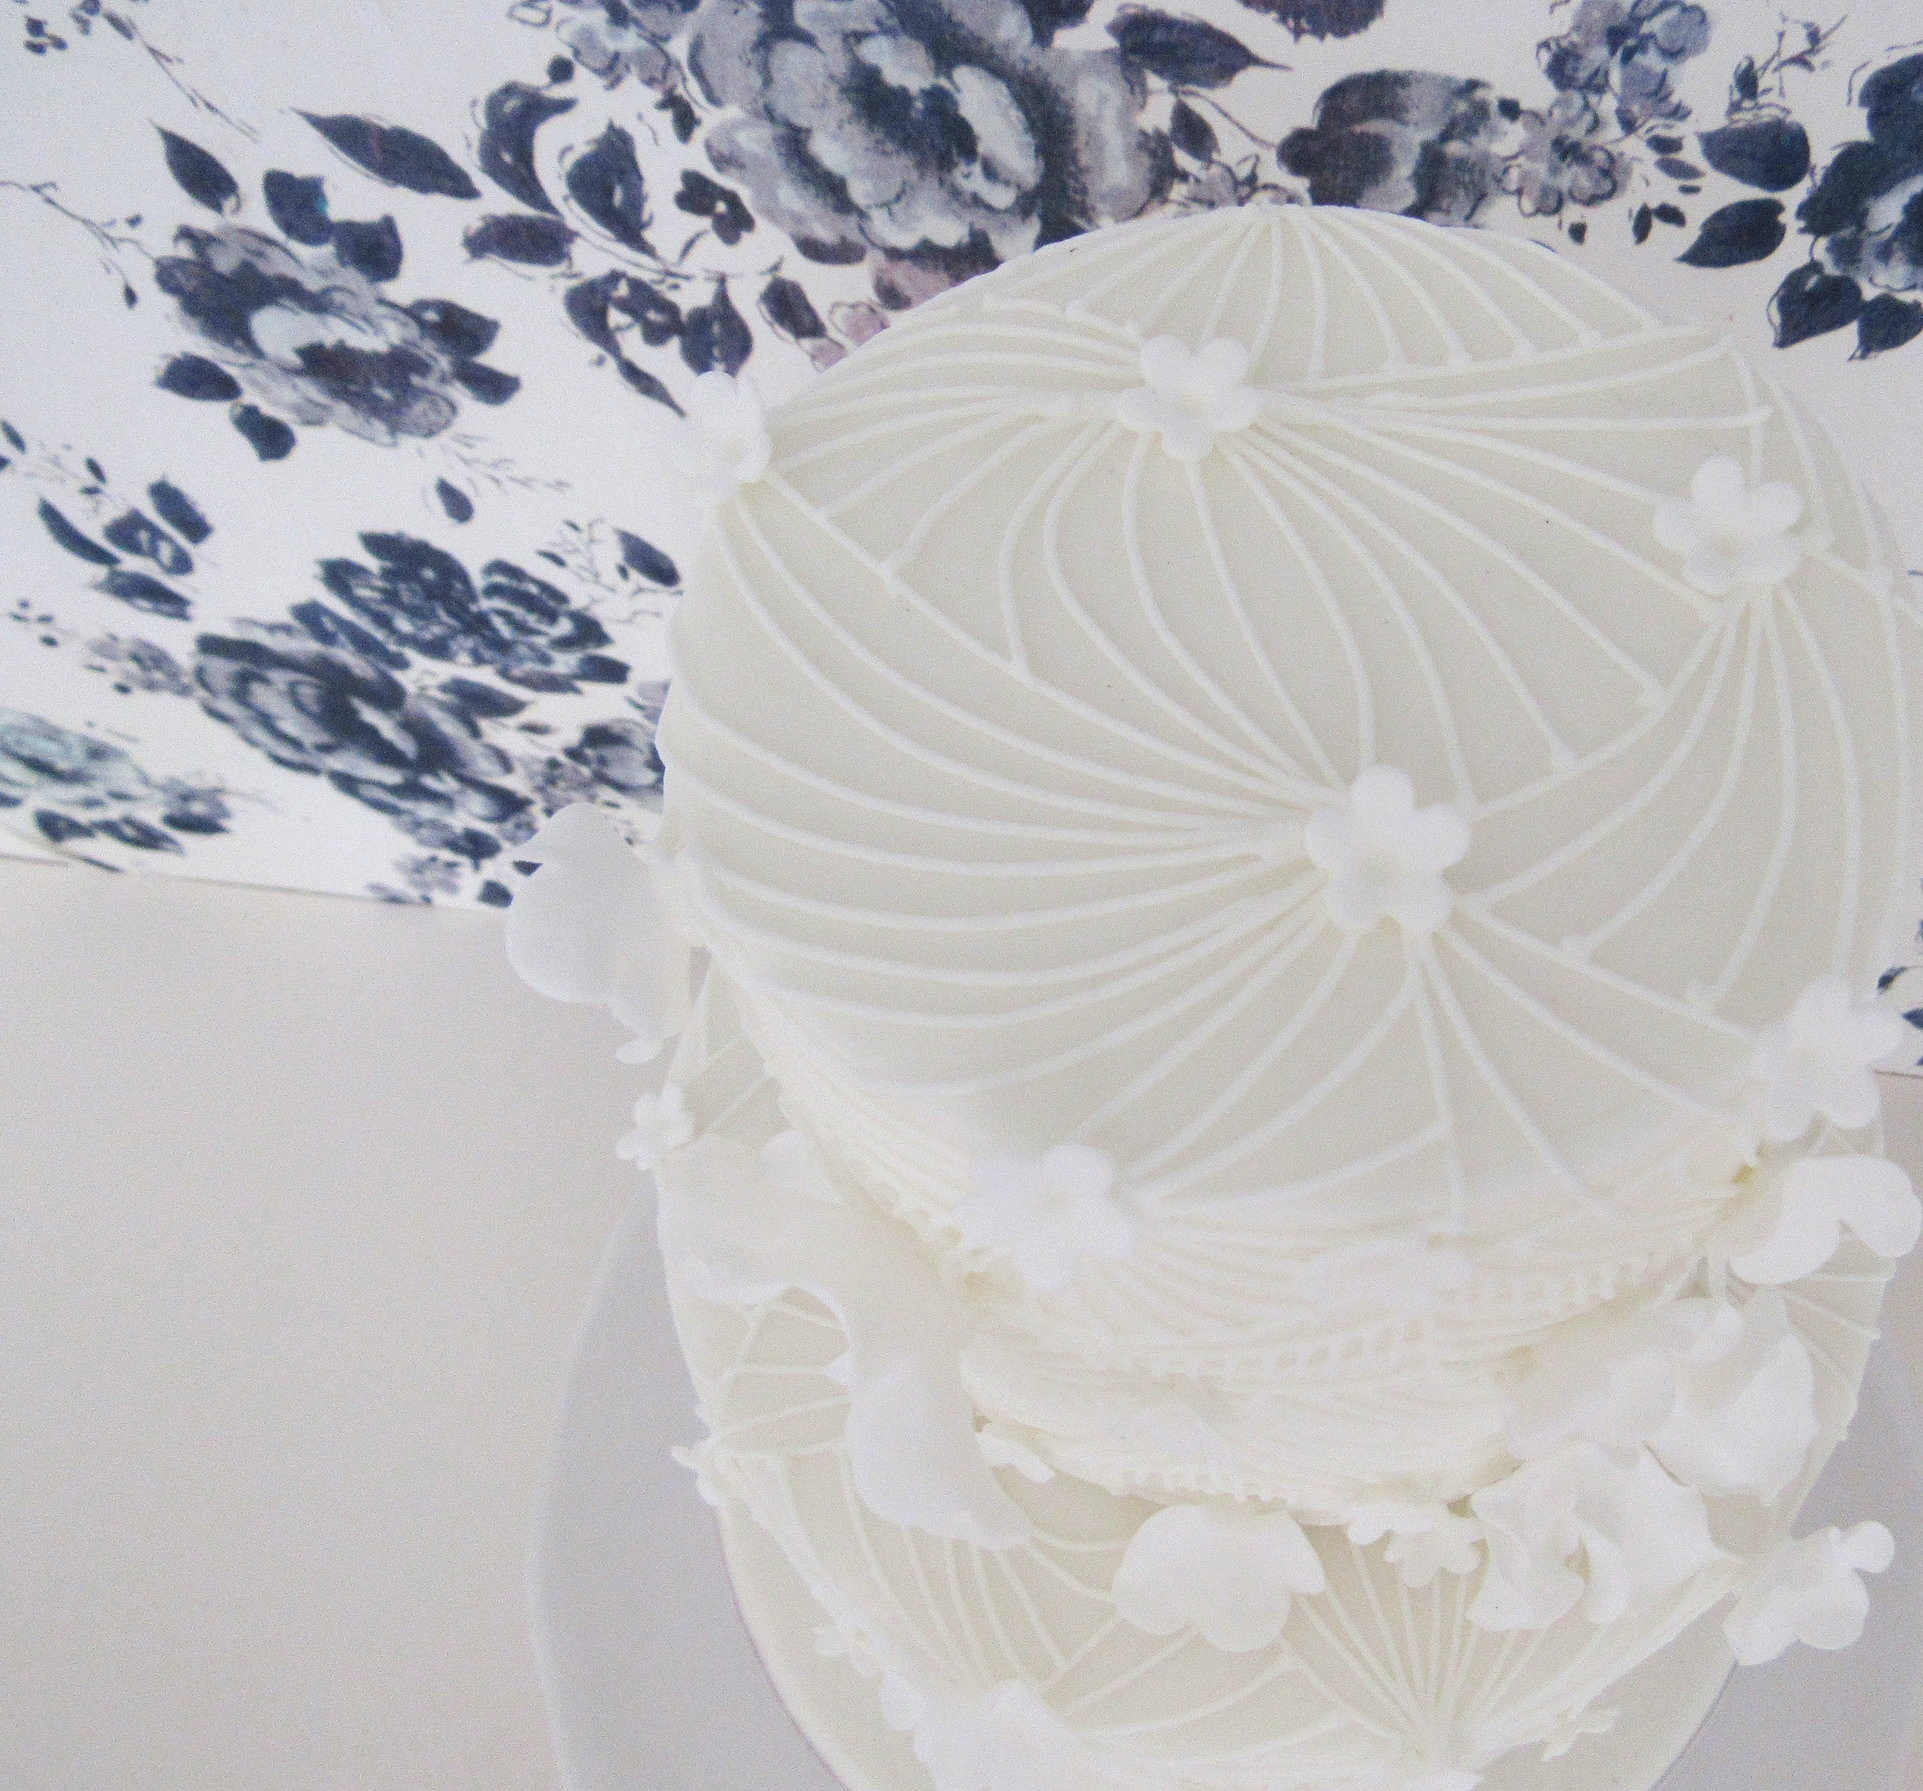 Geometric Lace White Wedding Cake - top view